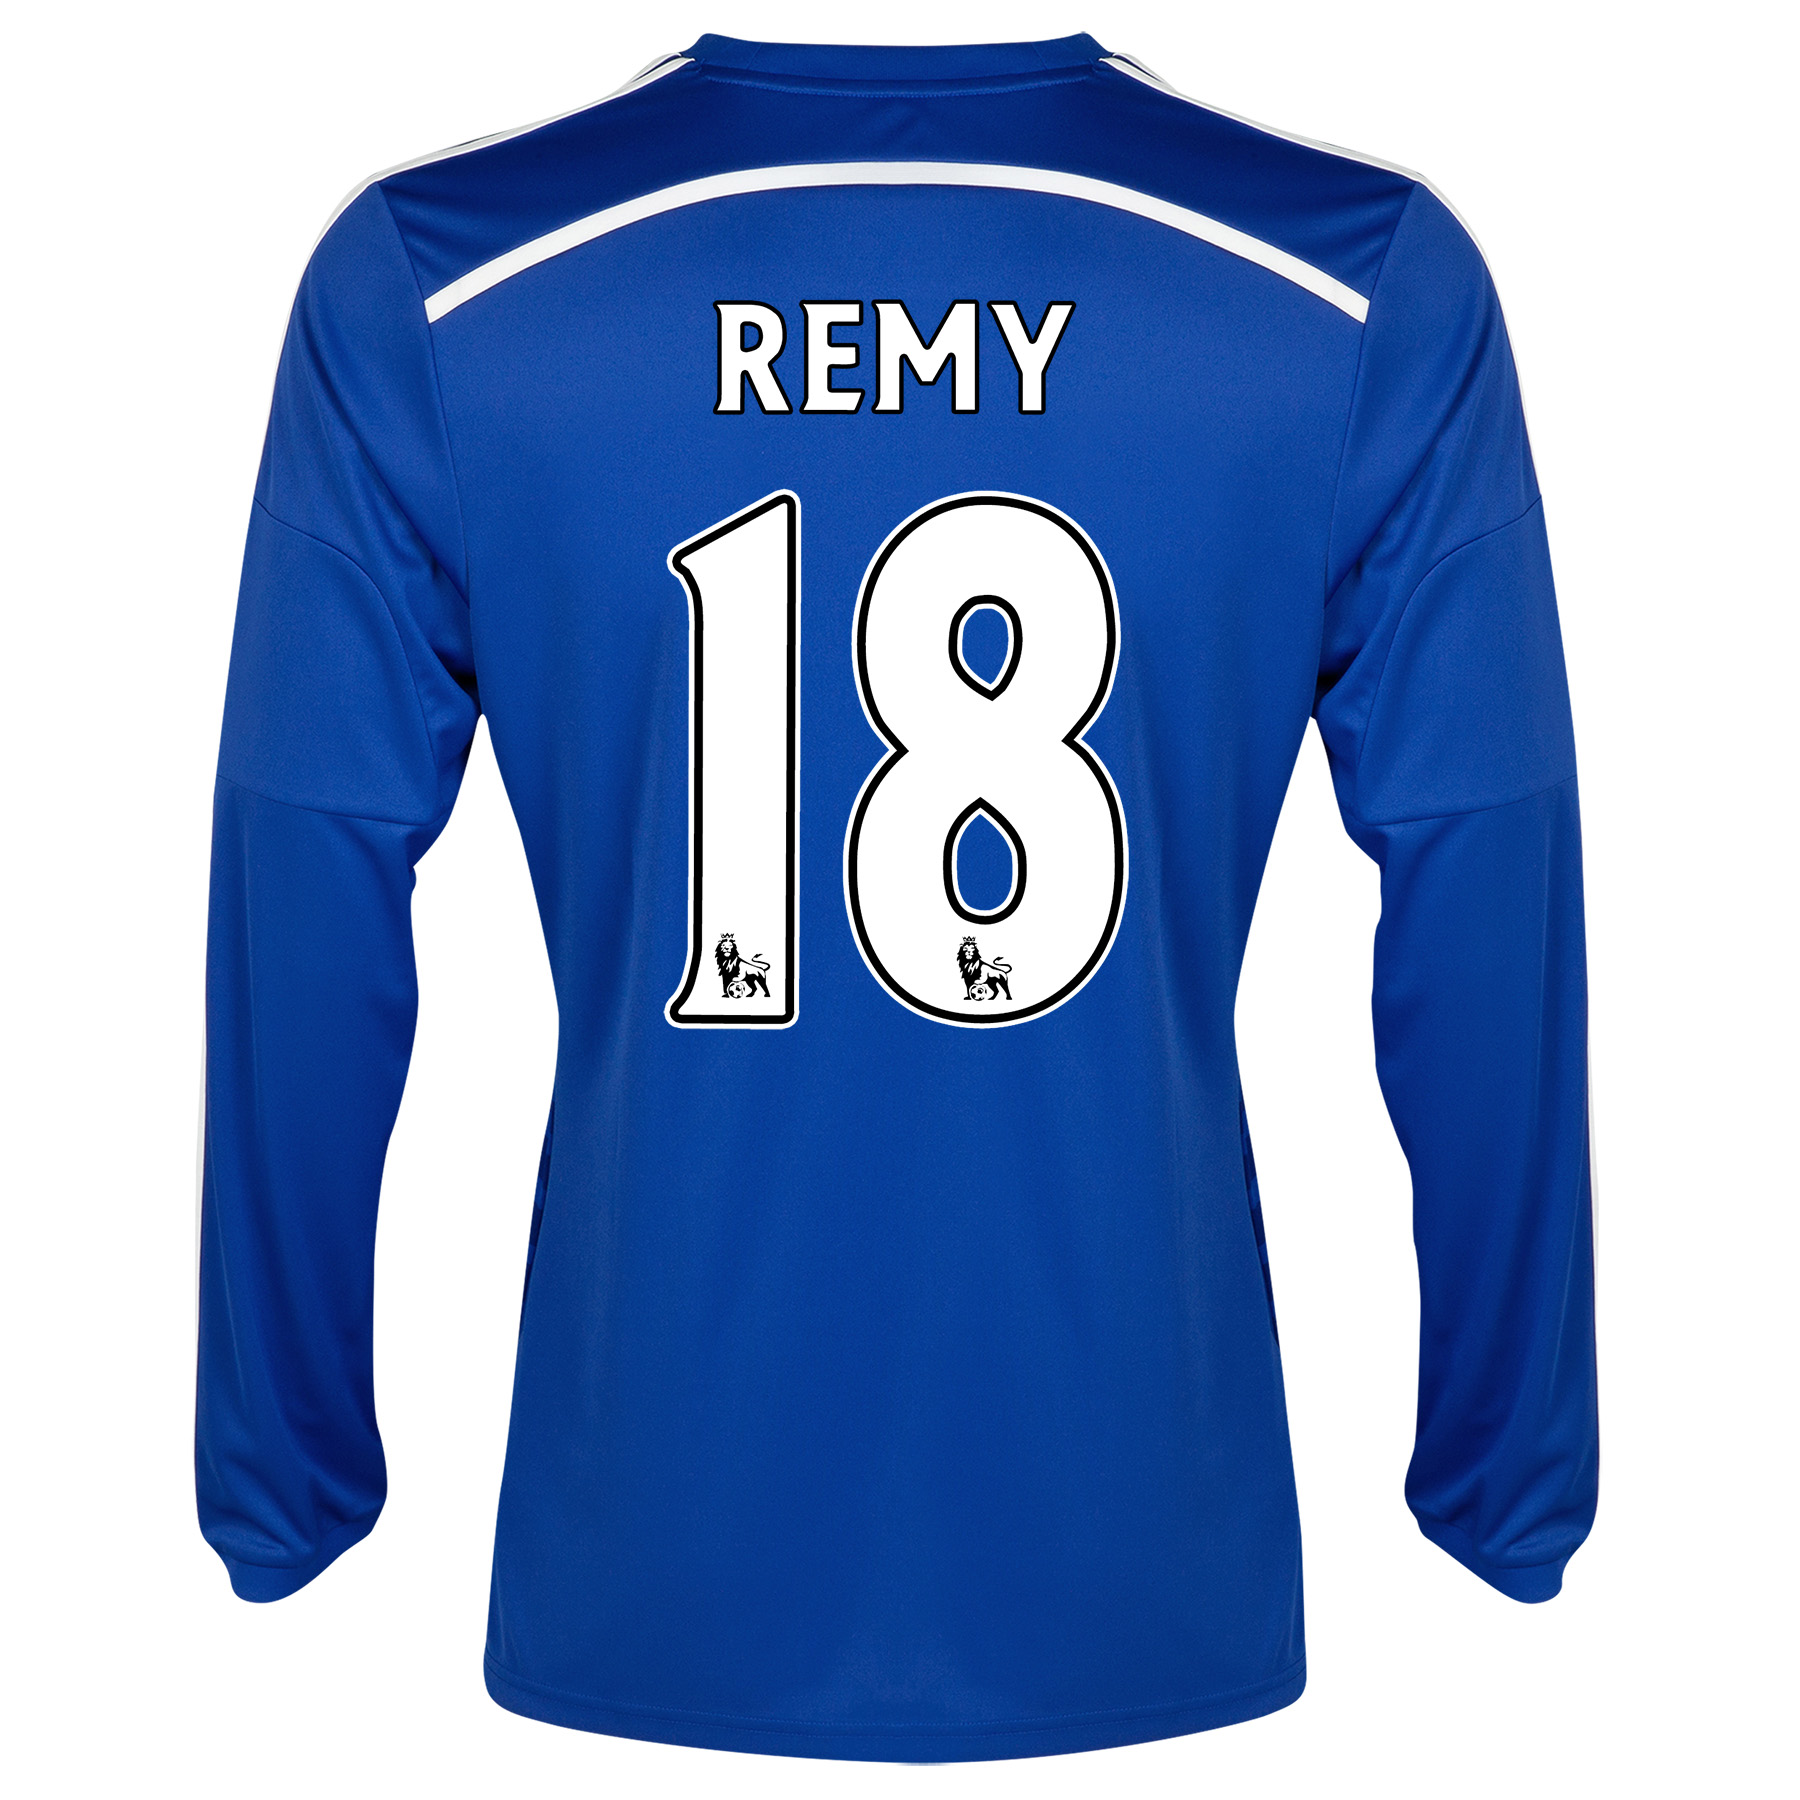 Chelsea Home Shirt 2014/15 - Long Sleeve with Remy 18 printing